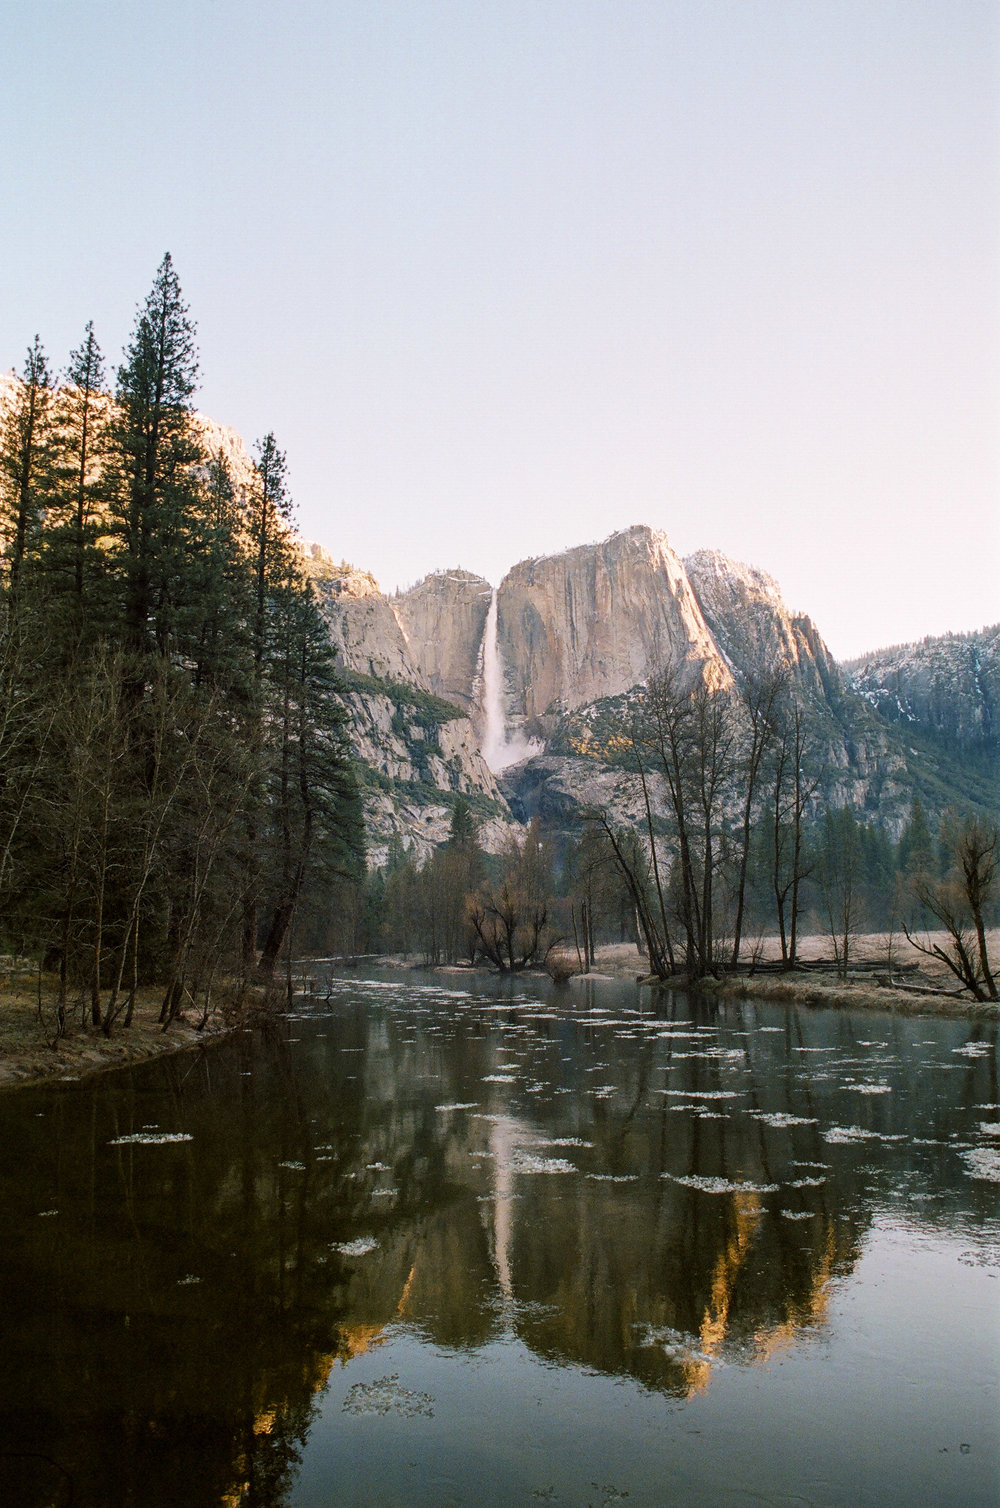 Portra 400 - Canon AE-1 - 24mm 2.8 Yosemite Falls + the Merced River